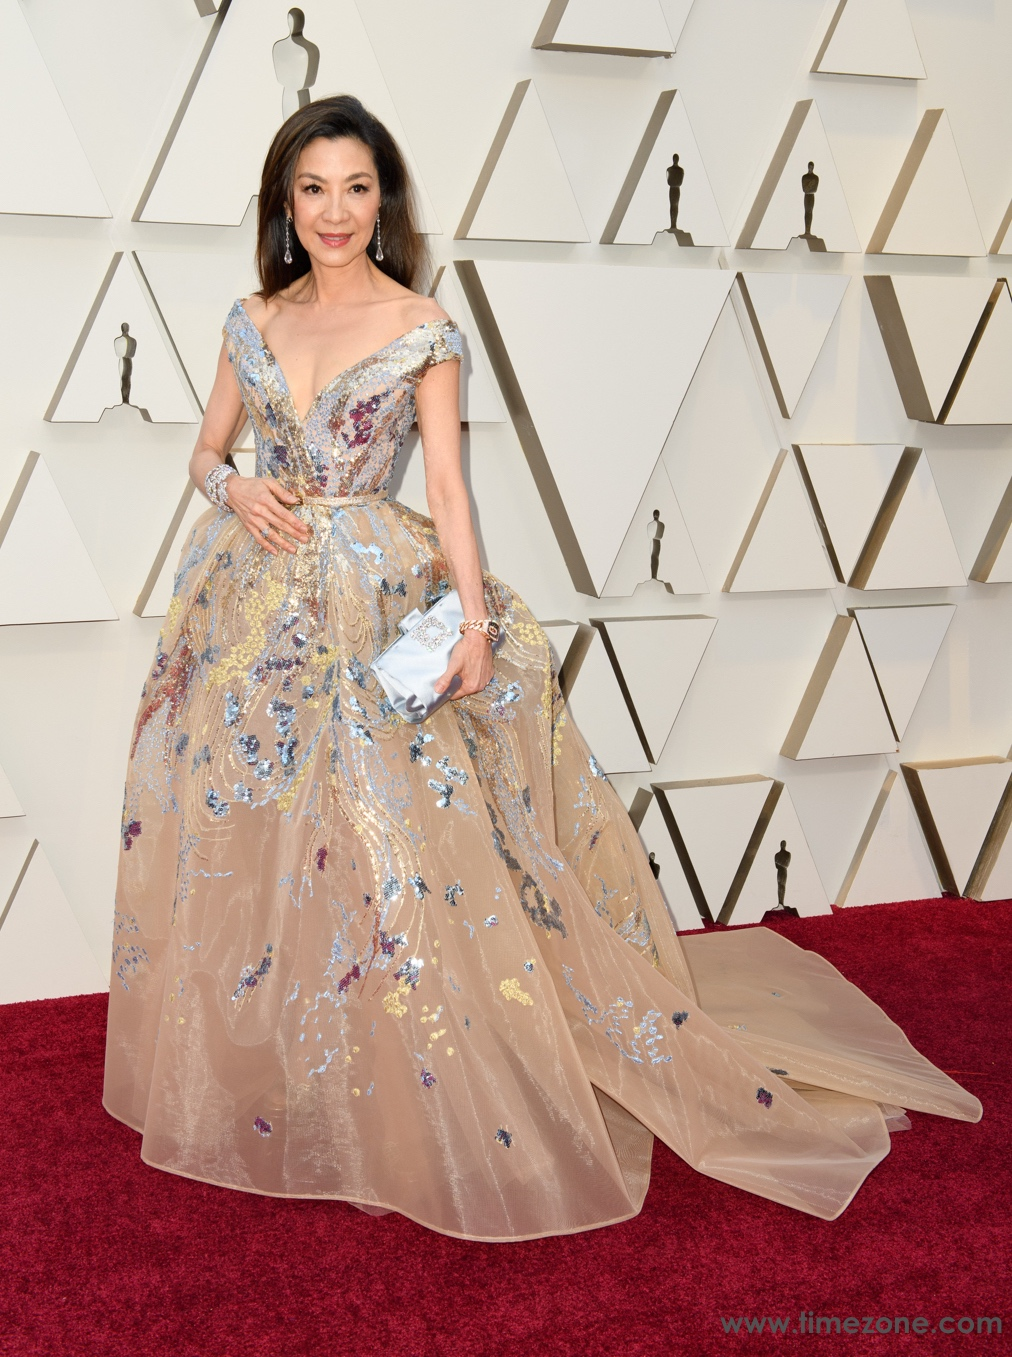 Michelle Yeoh Oscars, Pharrell Oscars Richard Mille, Michelle Yeoh Richard Mille RM07-01, Michelle Yeoh Richard Mille RM07-01 Full Set, RM07-01 Full Set, RM07-01, Pharrell Richard Mille